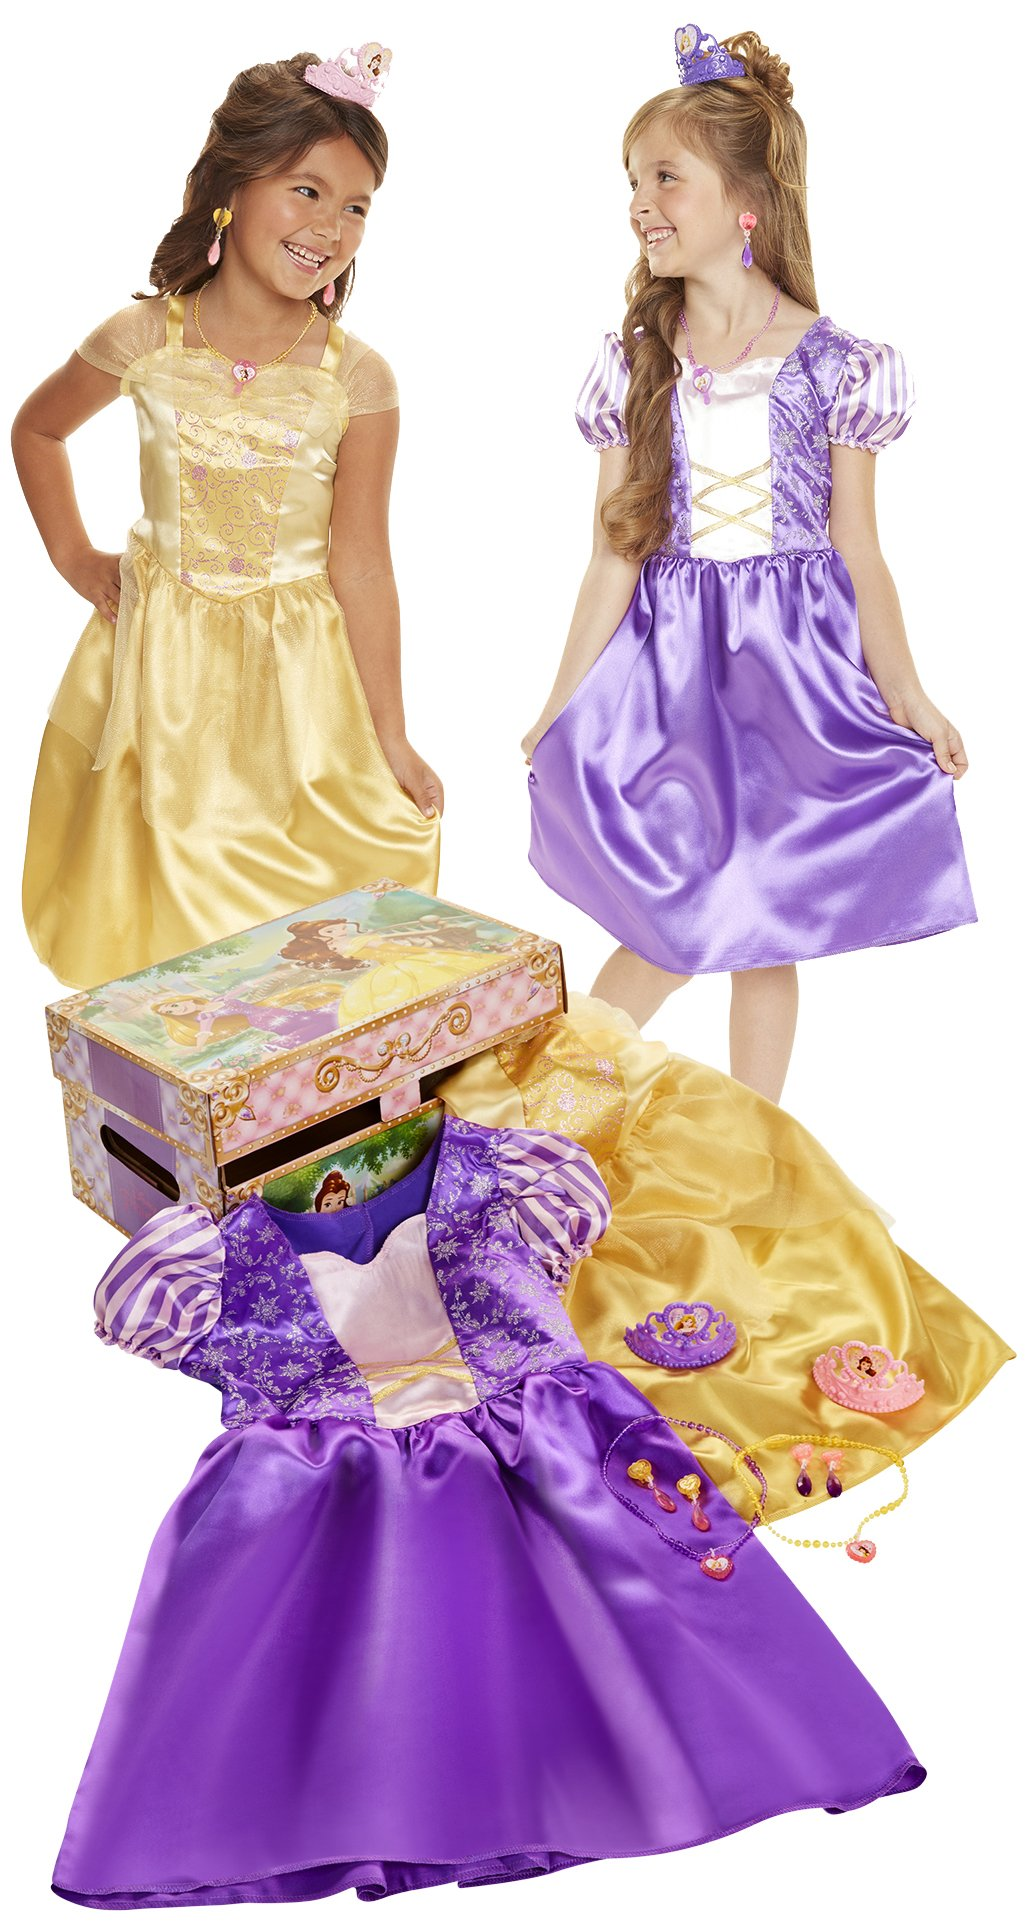 Cheap Belle Cosplay Dress Find Belle Cosplay Dress Deals On Line At